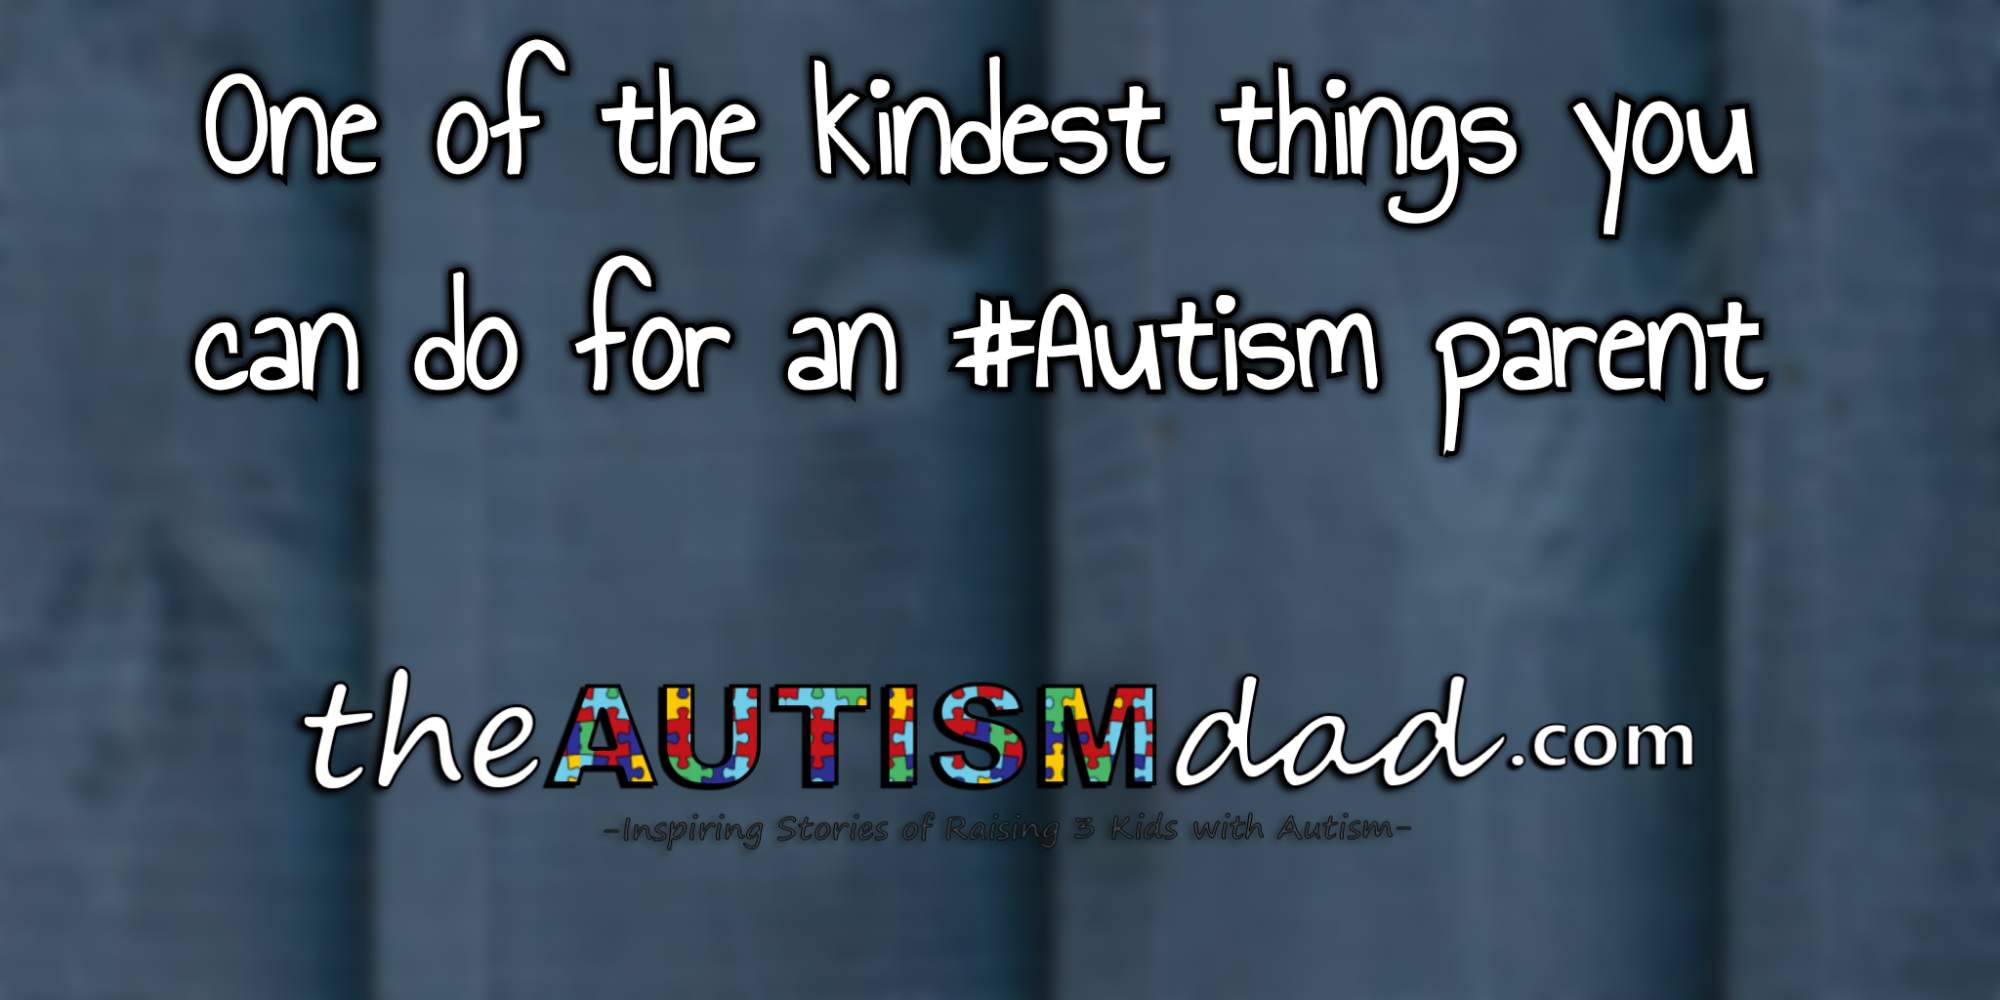 One of the kindest things you can do for an #Autism parent